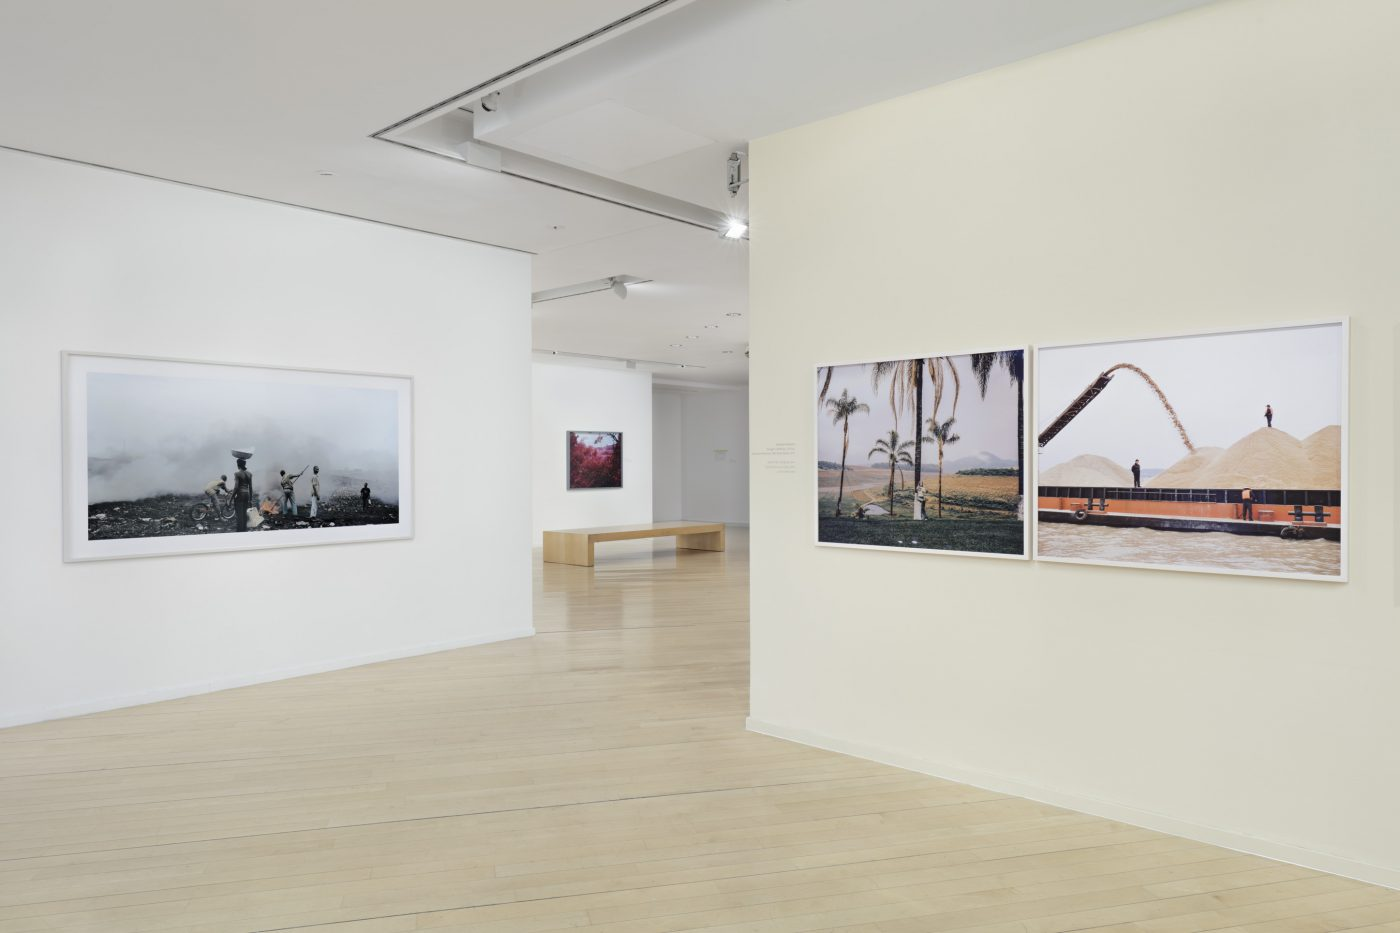 Group show, 'Evoking Reality' at Daimler Art Collection, Berlin, Germany.    4 — 109 x 90 cm, inkjet, editioned    1 — 200 x 172 cm, lightbox    Artists: Jane Alexander, Pieter Hugo, Richard Mosse, Vivianne Sassen, Guy Tillim.